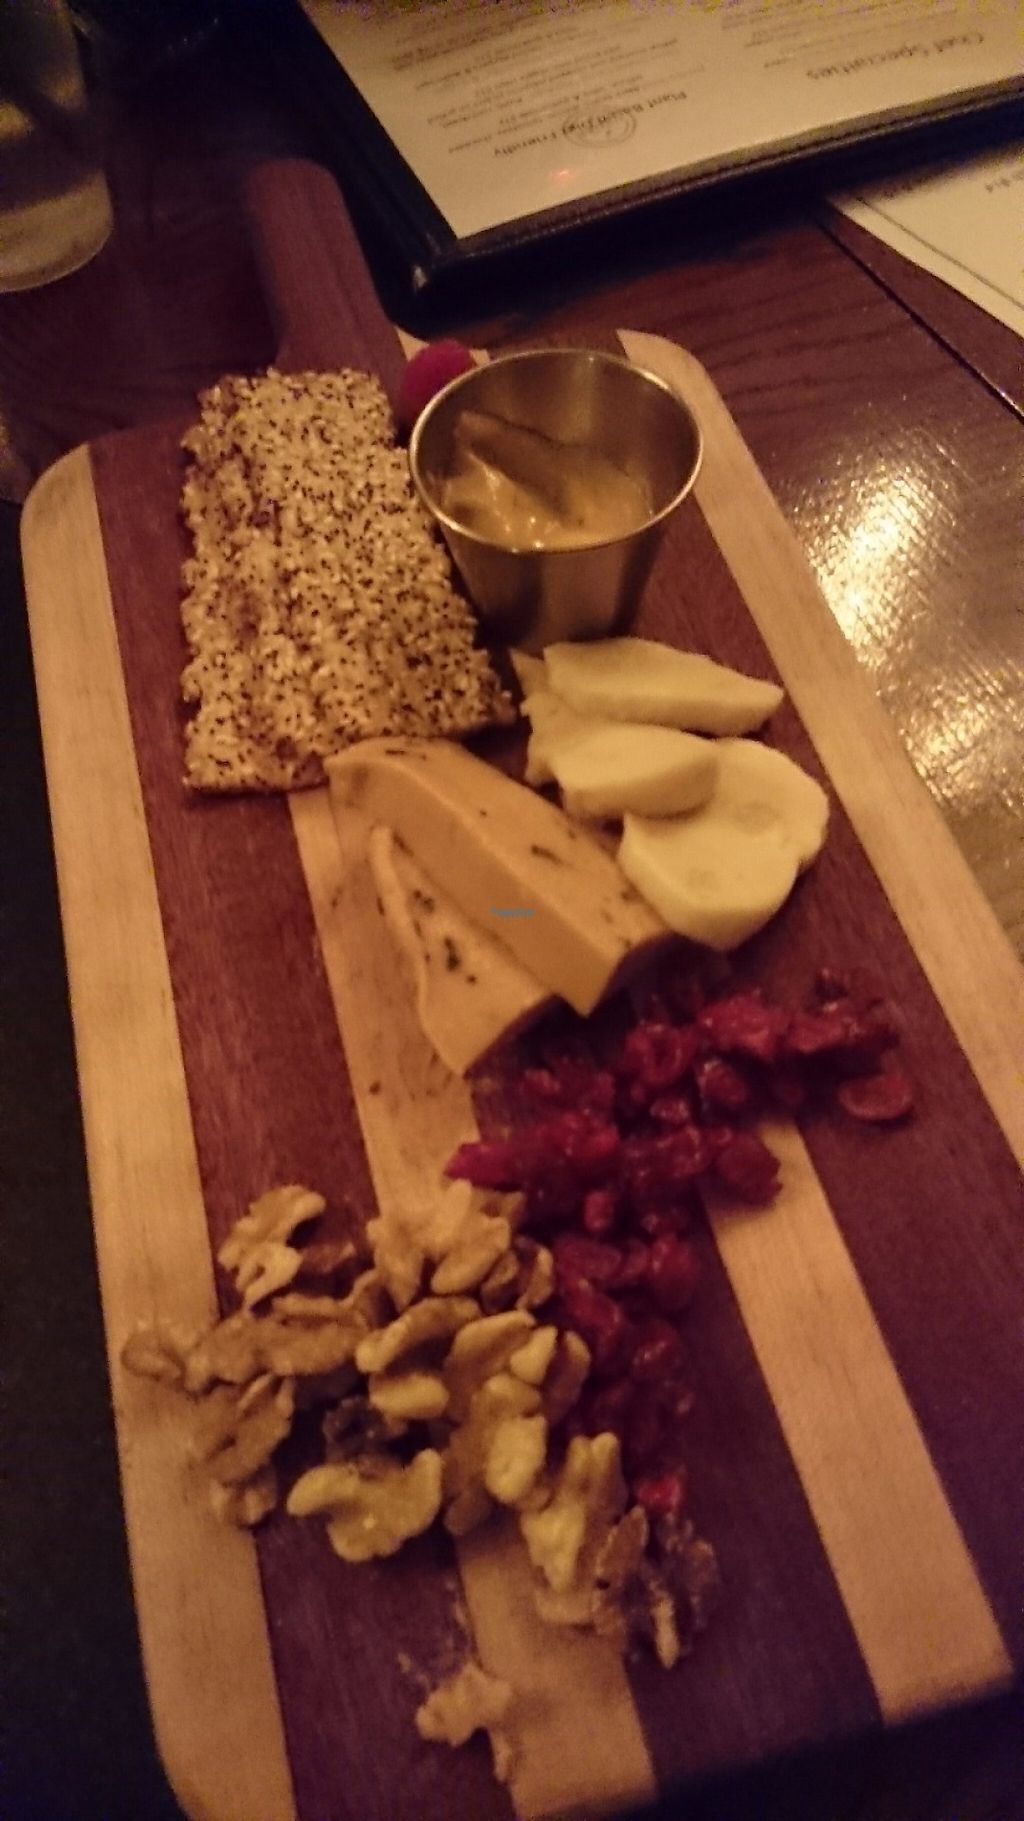 """Photo of Great American Pub  by <a href=""""/members/profile/ZoraySpielvogel"""">ZoraySpielvogel</a> <br/>Vegan cheese board  <br/> March 31, 2017  - <a href='/contact/abuse/image/81793/243156'>Report</a>"""